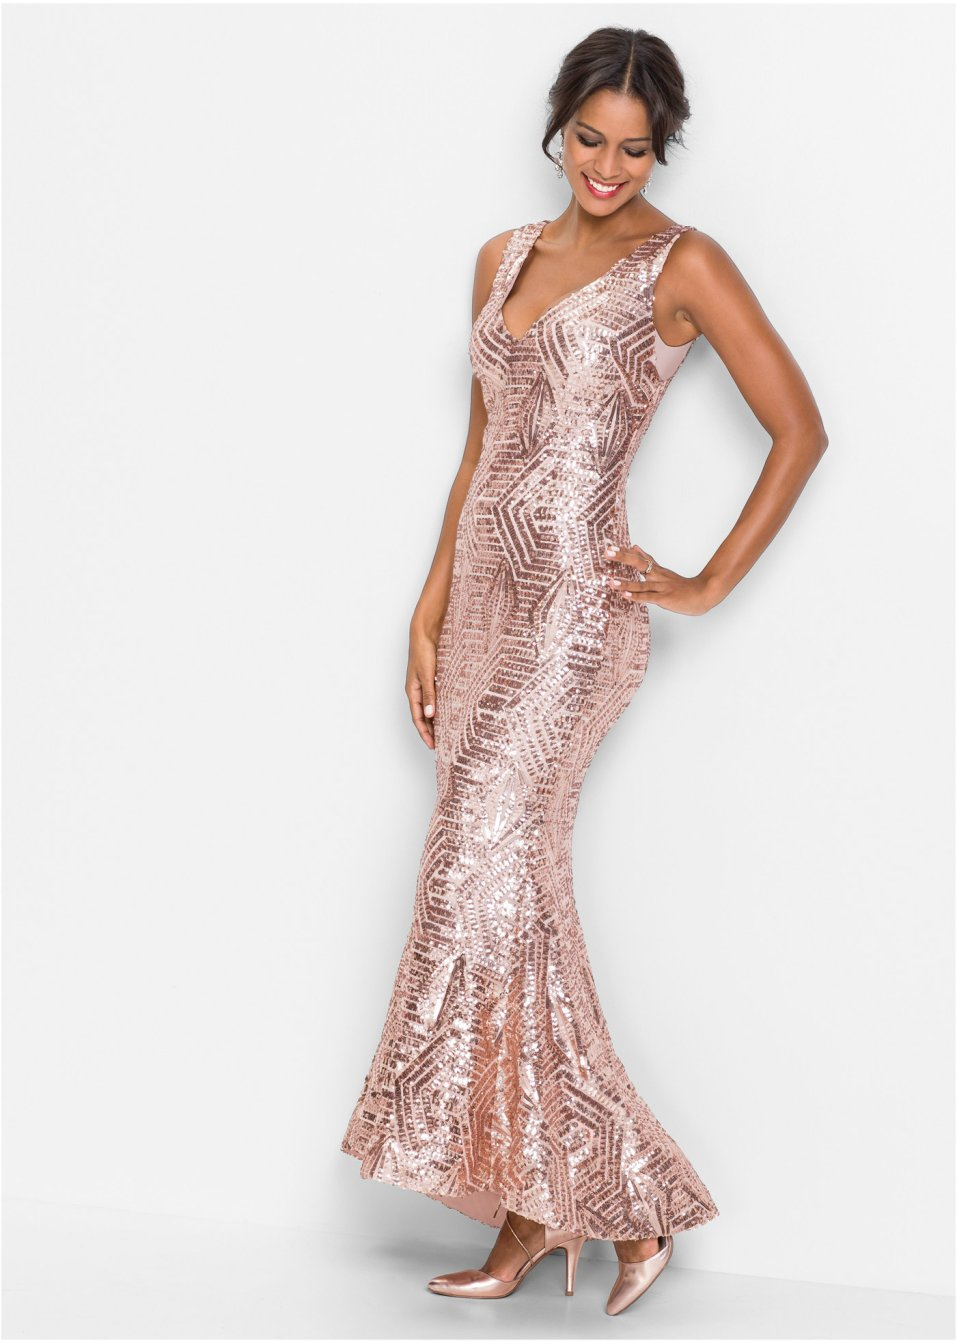 82147b1a03c6 Abito di paillettes Rosa quarzo - Donna - BODYFLIRT boutique - bonprix.it